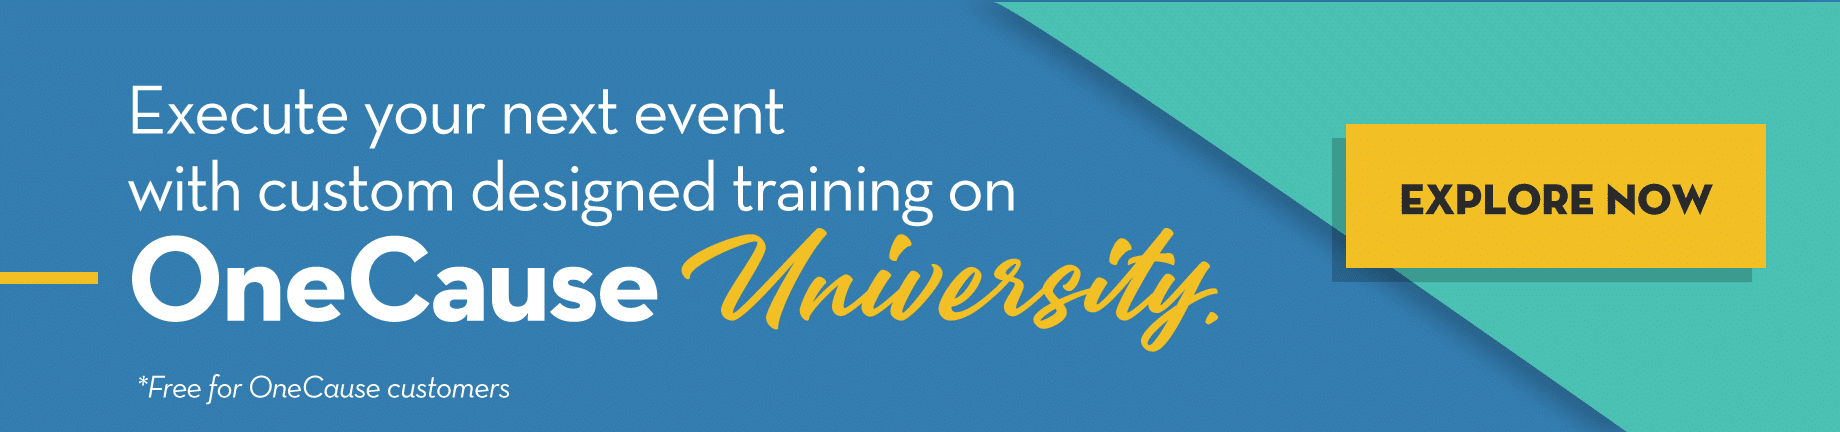 execute-your-next-event-with-custom-designed-training-on-OneCause-university-cta-top